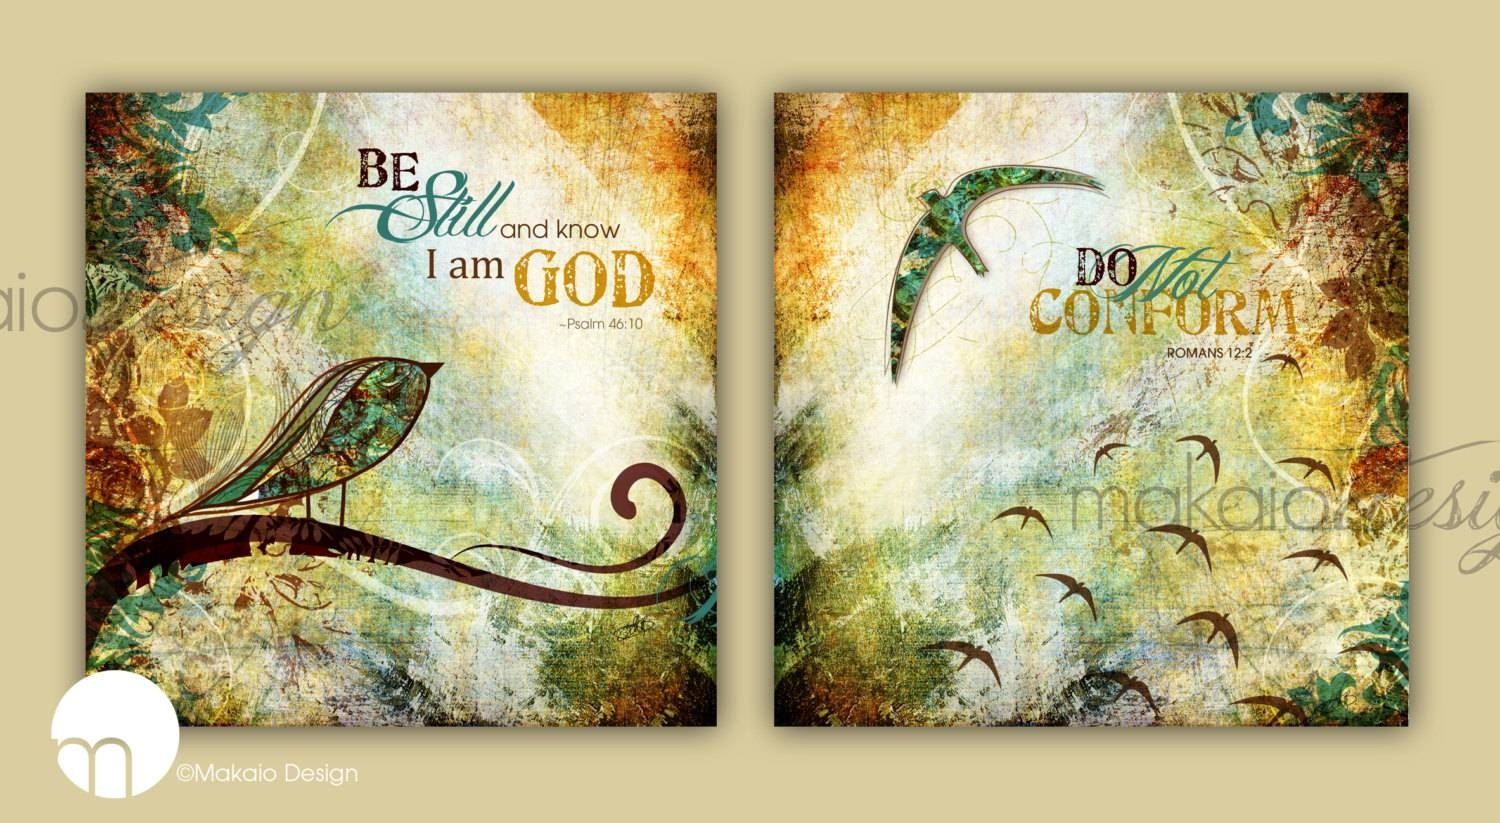 View Gallery of Christian Canvas Wall Art (Showing 4 of 20 Photos)